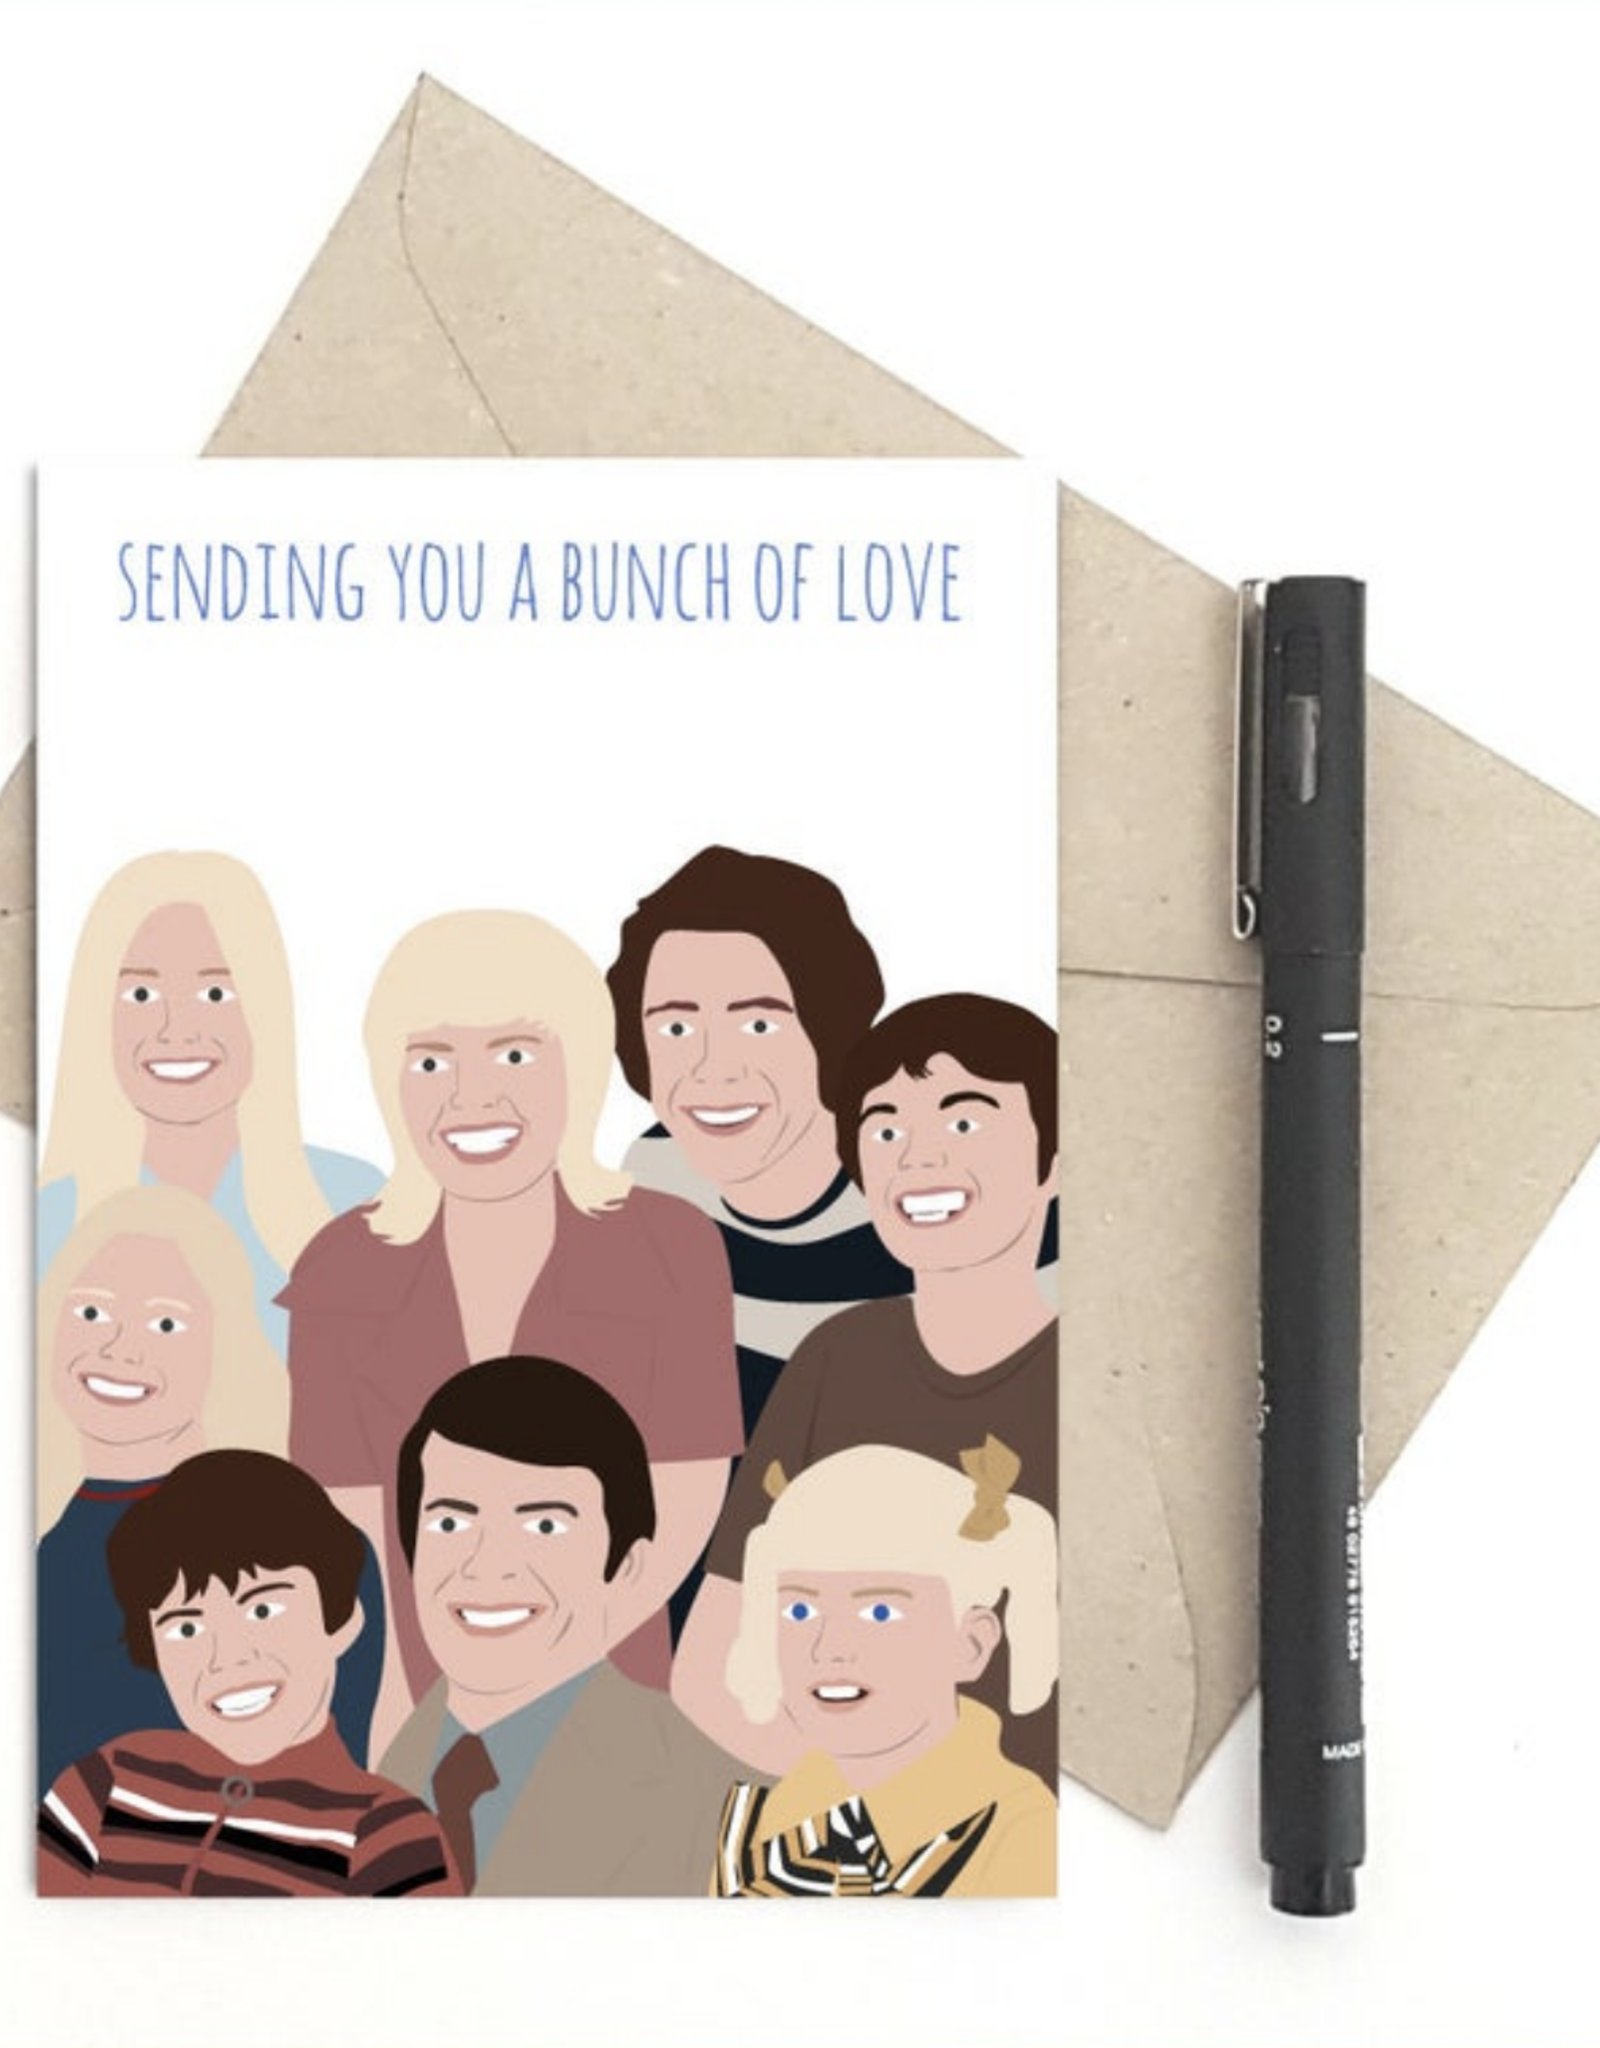 Sending You a Bunch of Love (Brady Bunch) Greeting Card